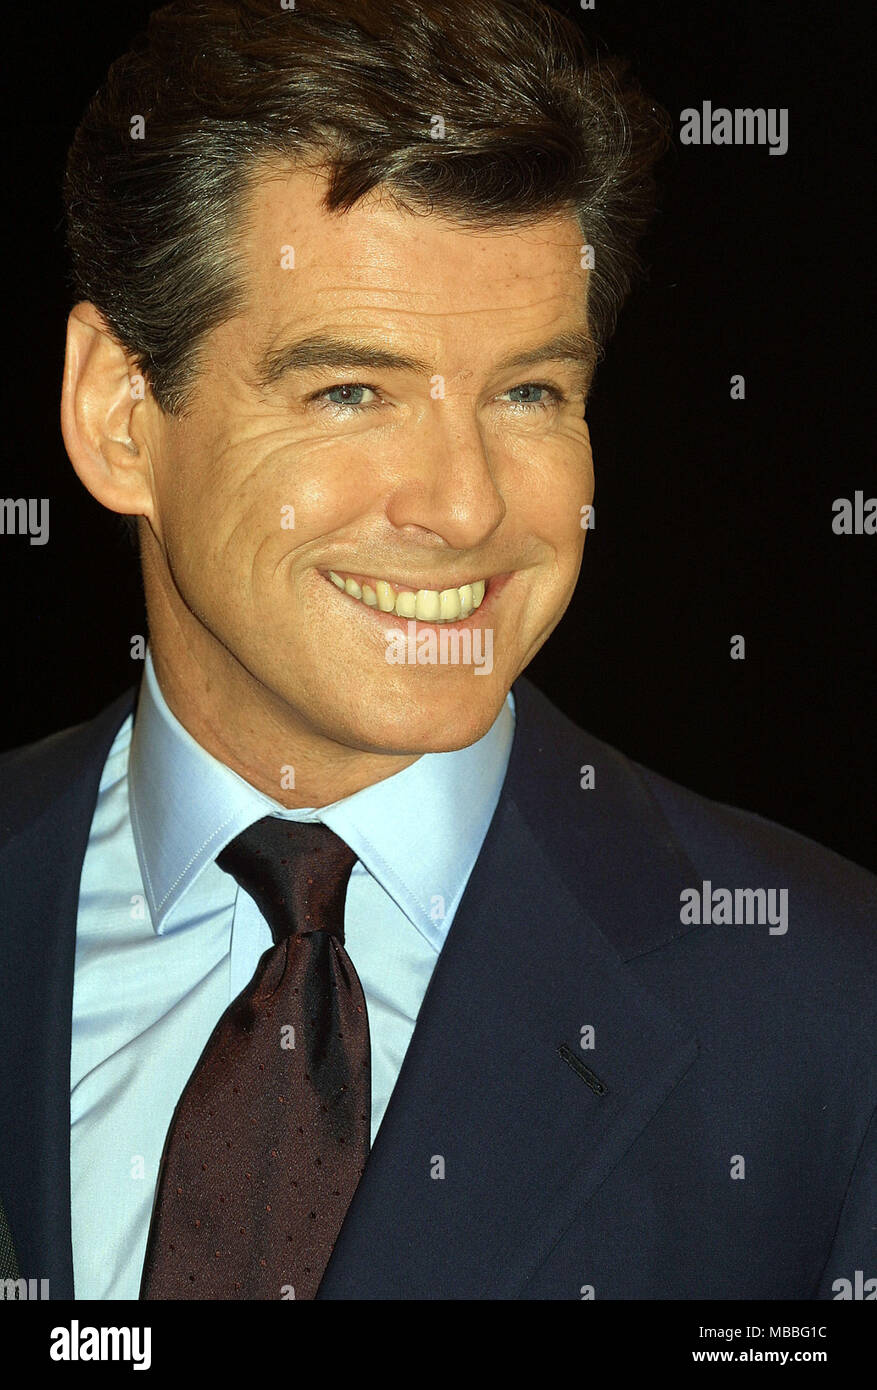 Pierce Brosnan at the Pinewood Studios for the James Bond film Die Another Day  with Rosamund Pike (left) and Halle Berry - Stock Image